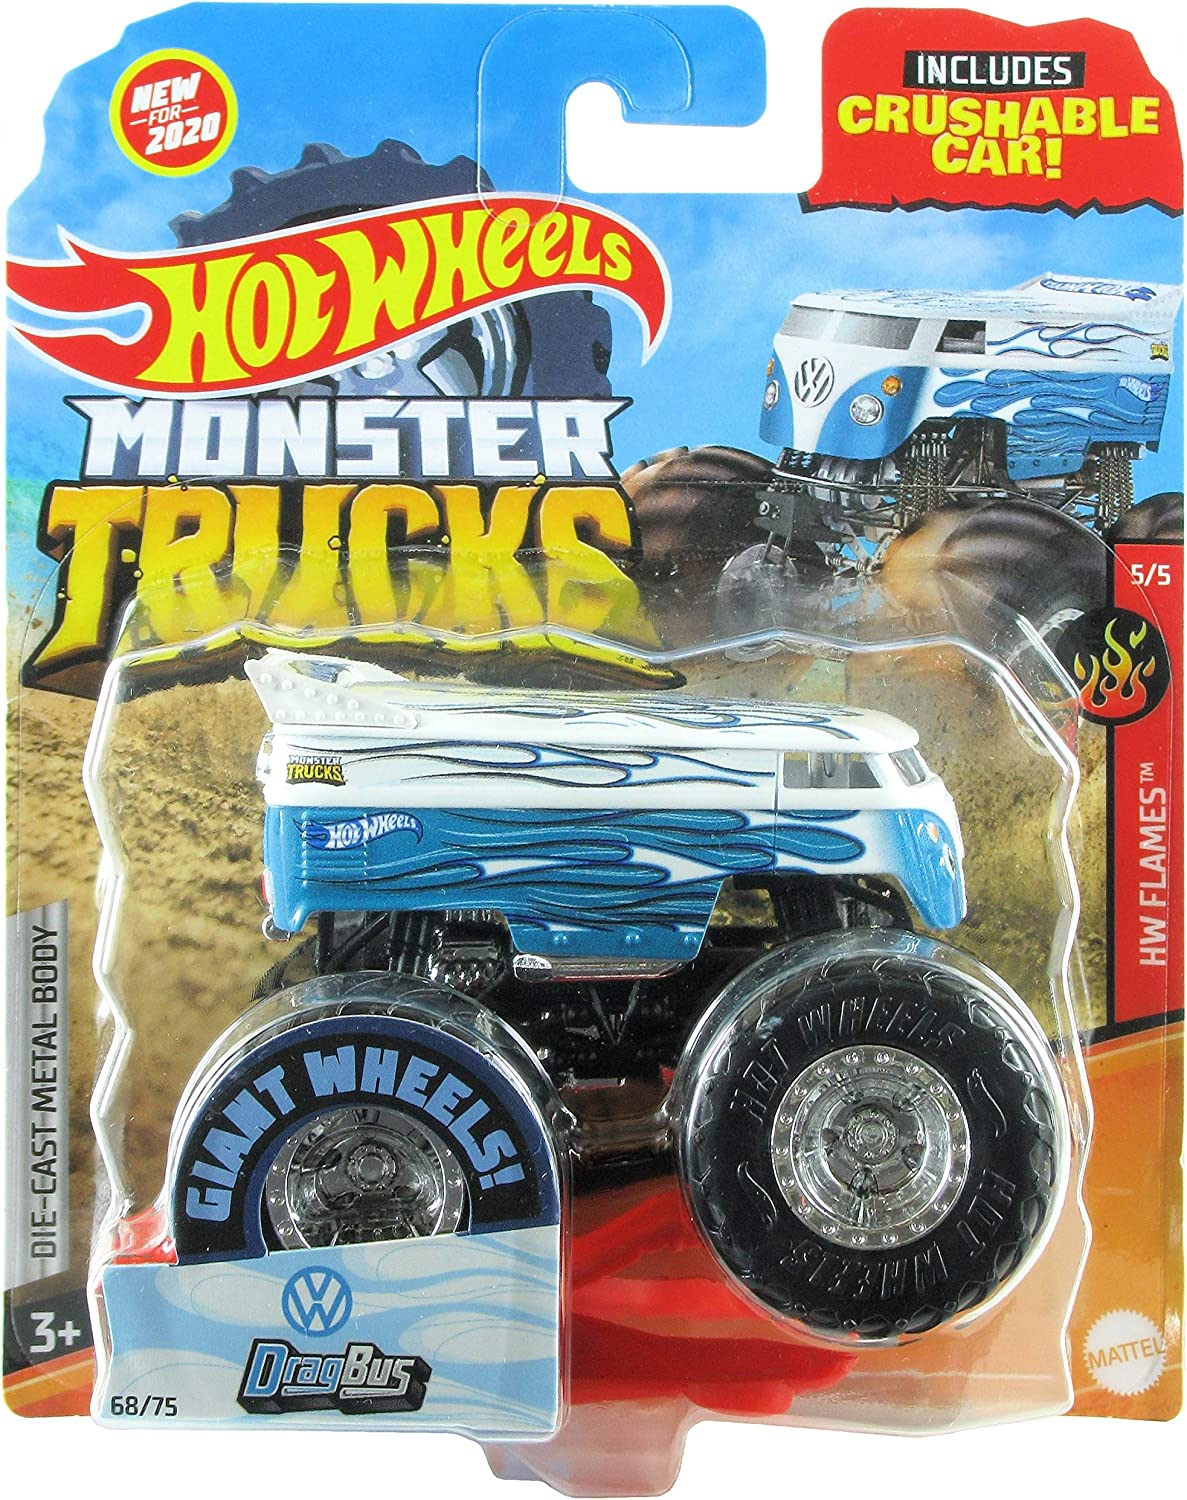 Amazon Com Hot Wheels Monster Trucks 2020 1 64 Scale Truck With Crushable Car 68 75 Hw Flames 5 5 Vw Volkswagen Drag Bus Toys Games